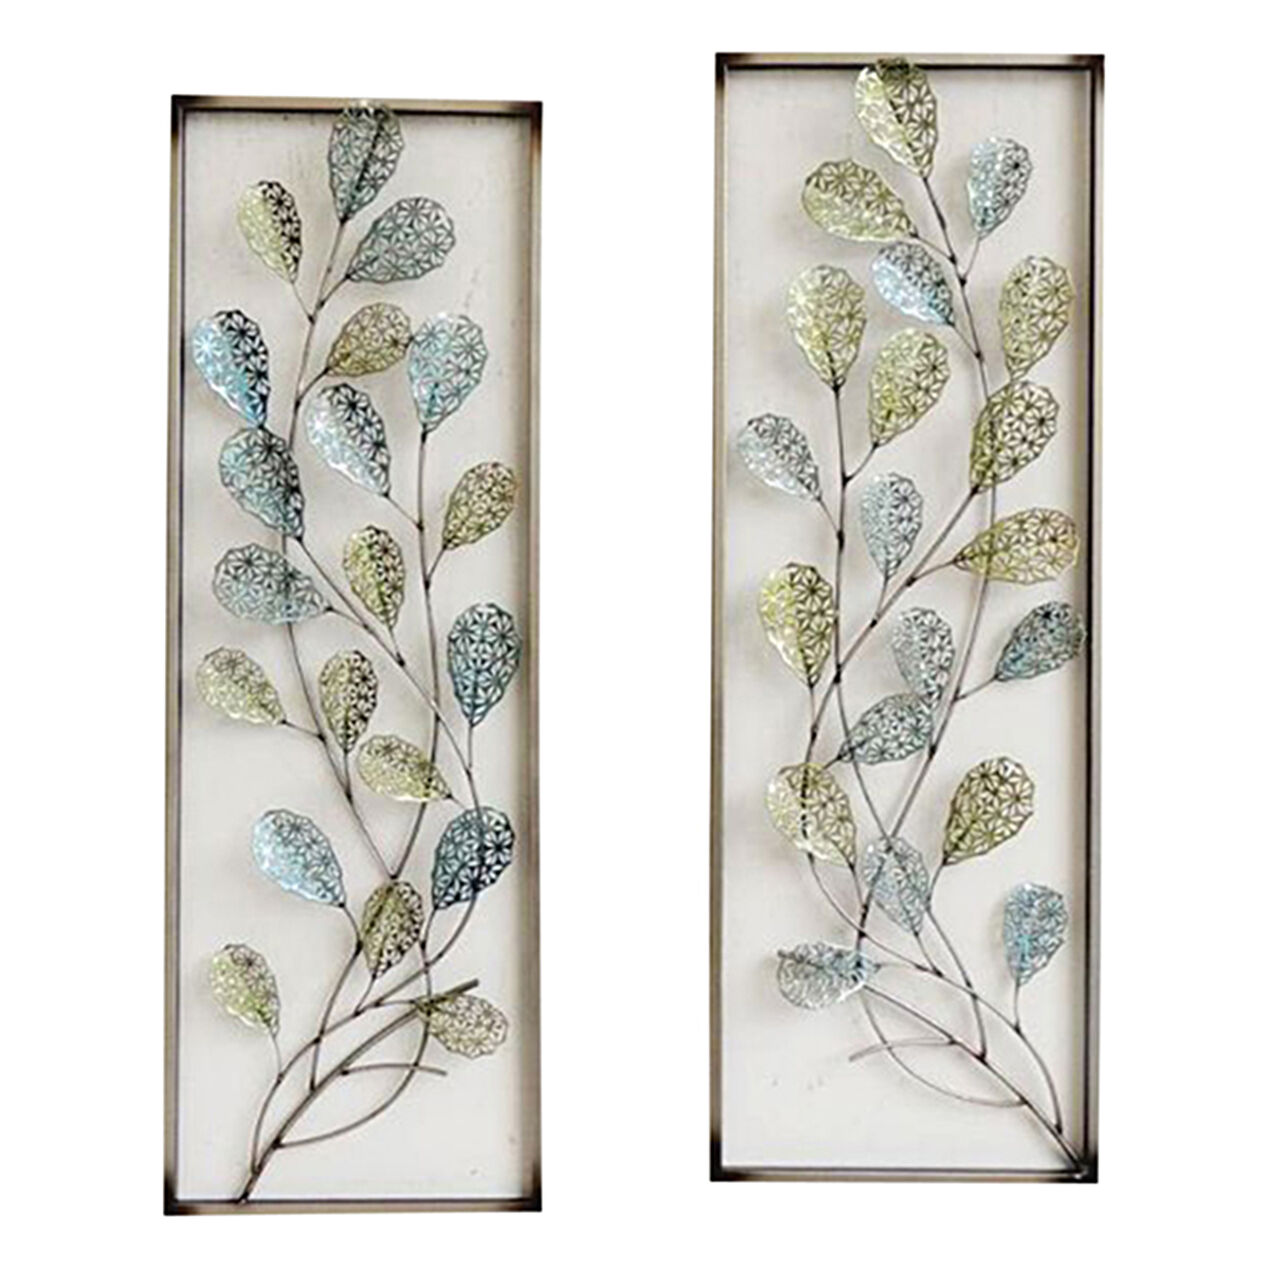 Home Decor Art Wall Decor Wall Decor ~ In framed filigree leaf wall décor at home